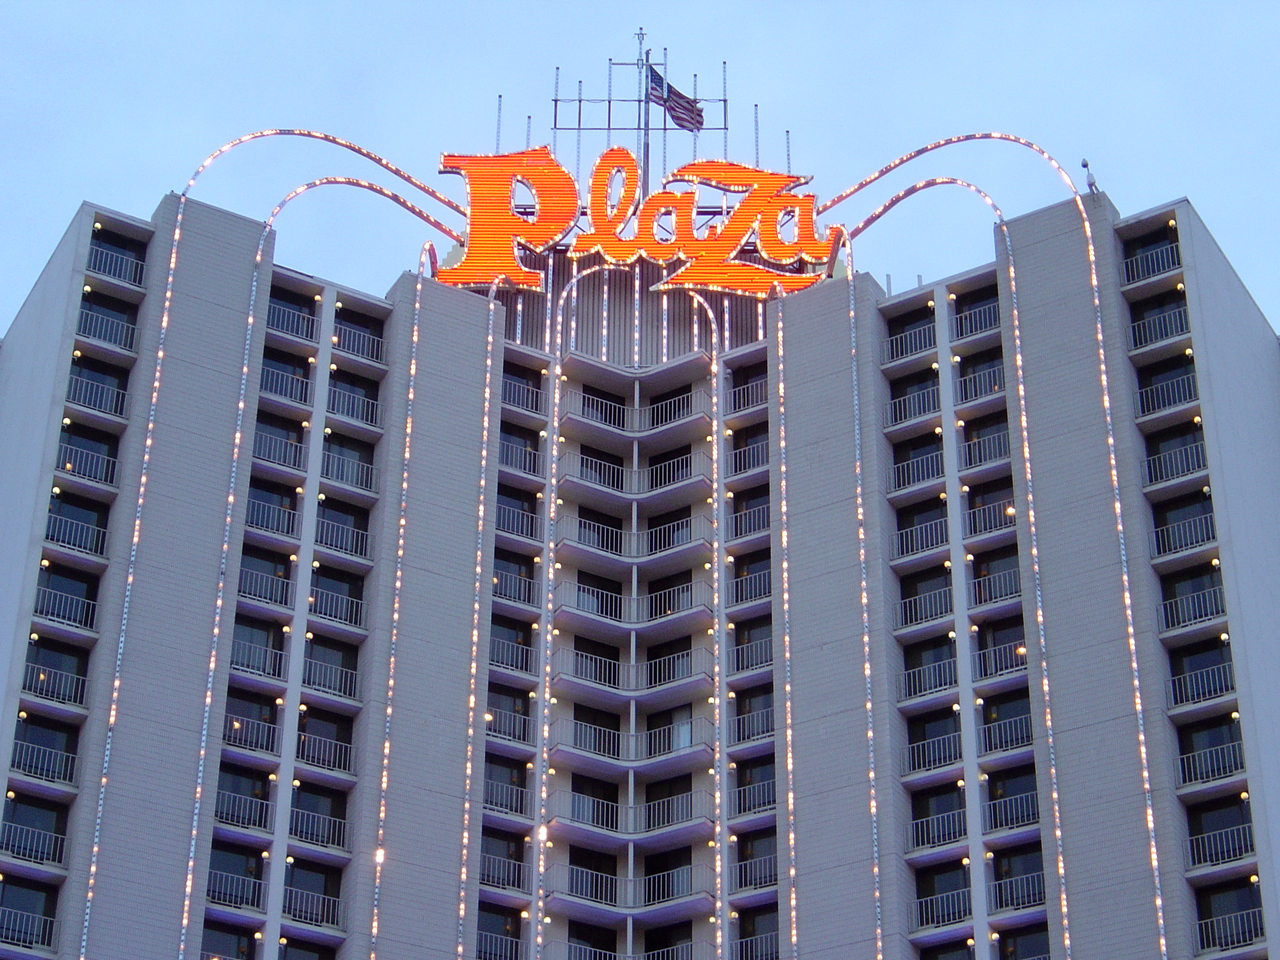 The plaza casino lv morango casino resort and spa